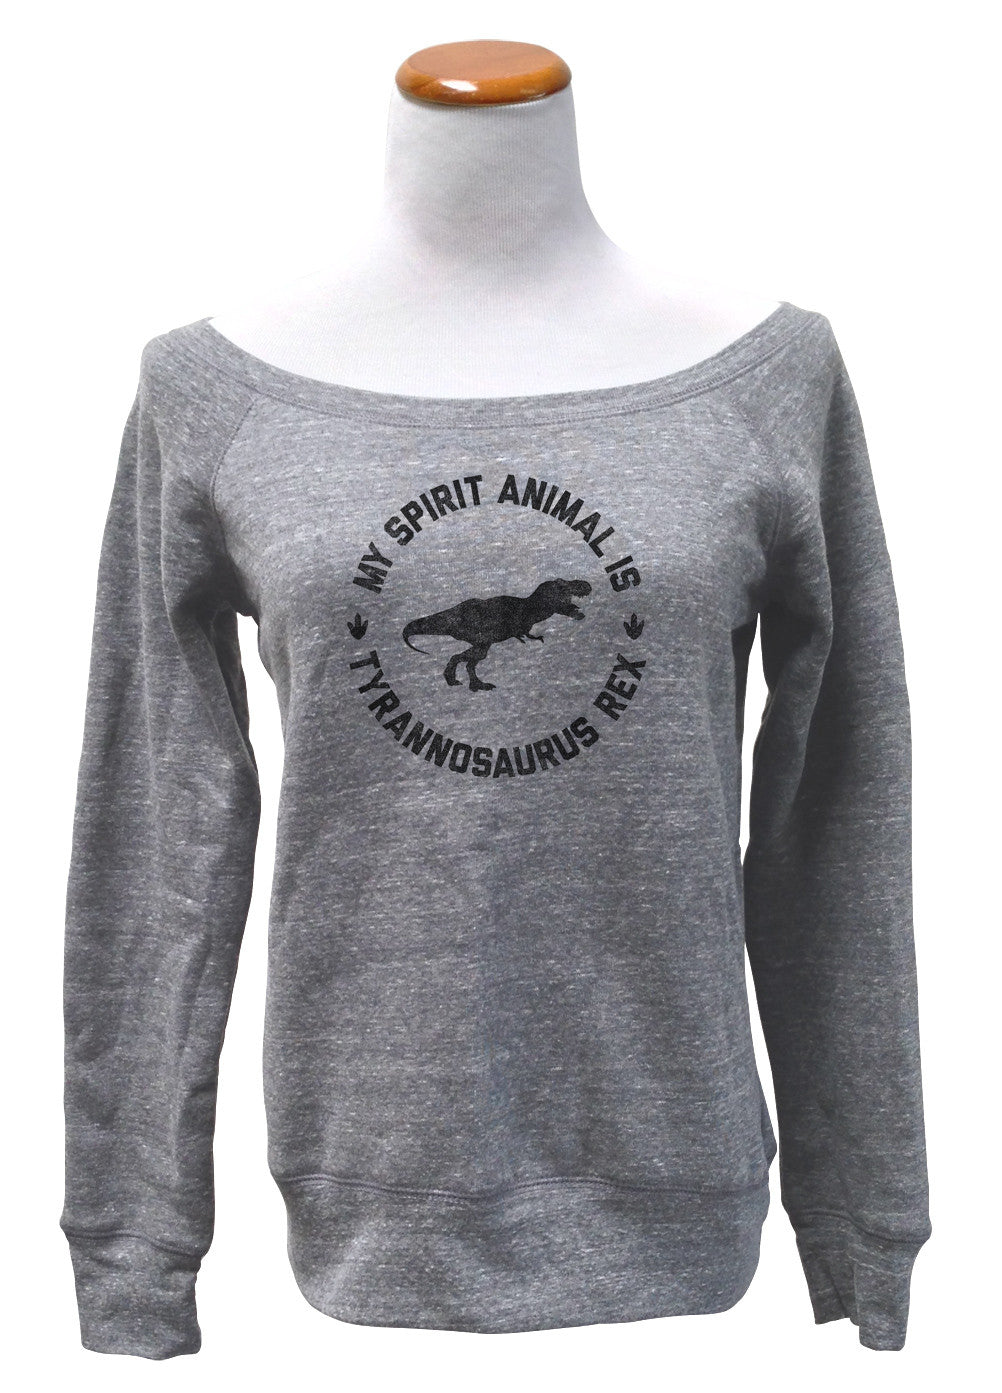 Women's My Spirit Animal is T-Rex Scoop Neck Fleece